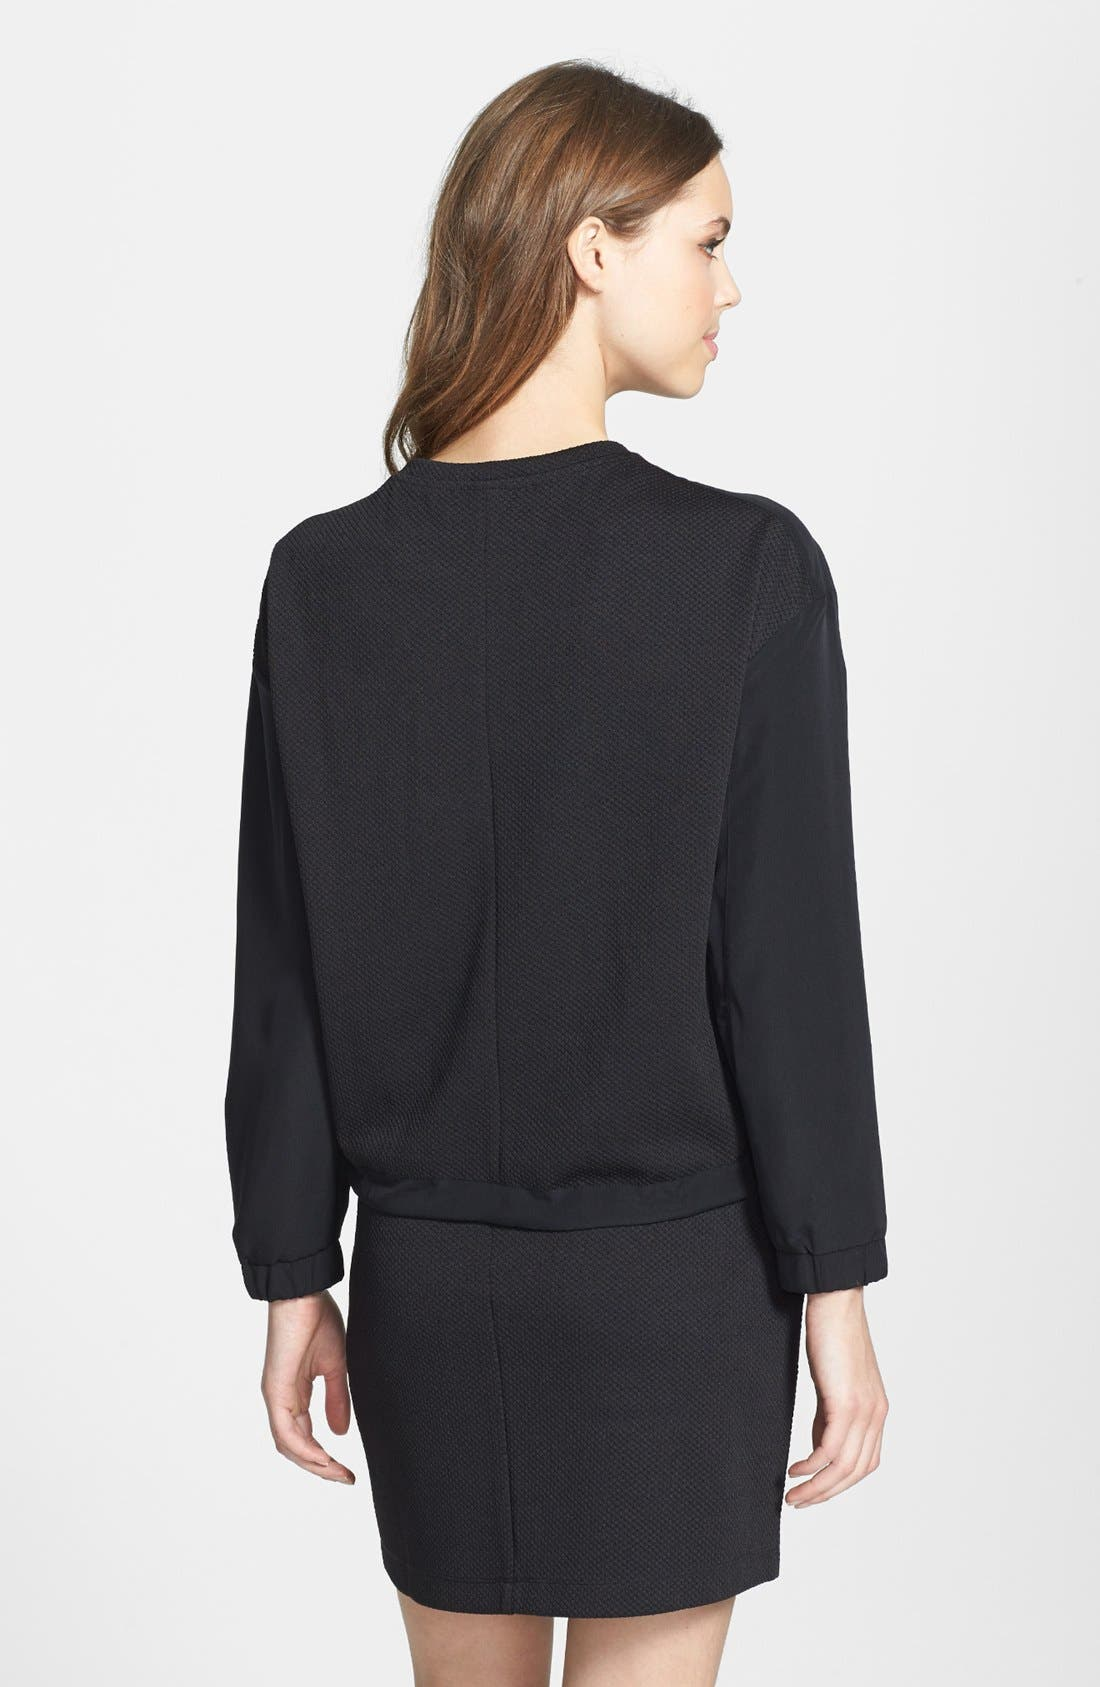 Alternate Image 2  - Two by Vince Camuto 'Tech' Waffle Knit Sweatshirt